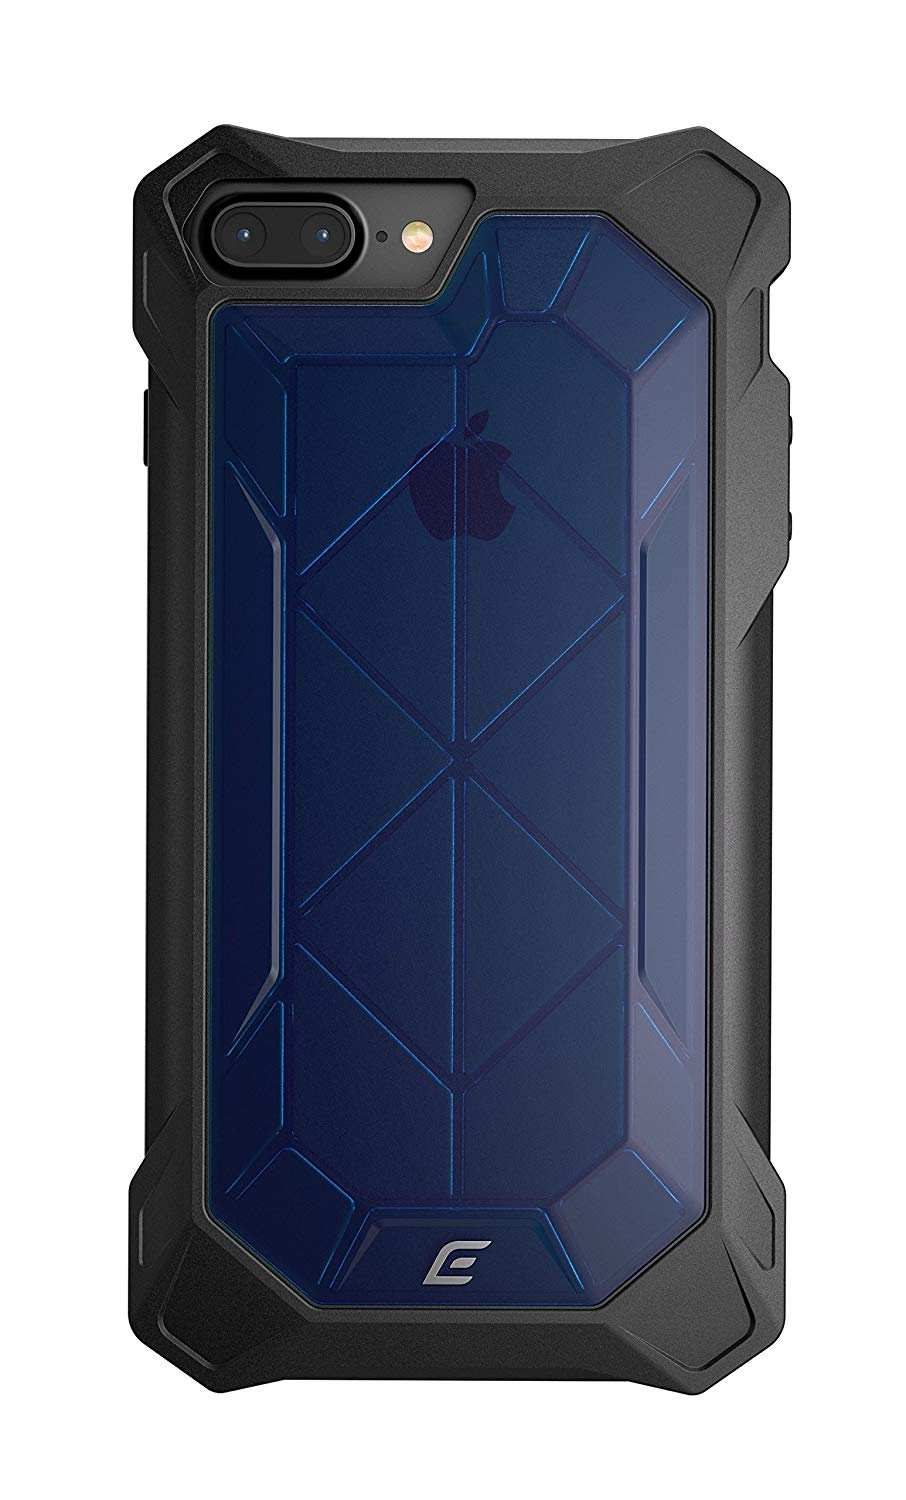 Element Case REV Drop Tested Case for Apple iPhone 7 Plus / iPhone 8 Plus - Blue (EMT-322-152EZ-04) get best offers deals